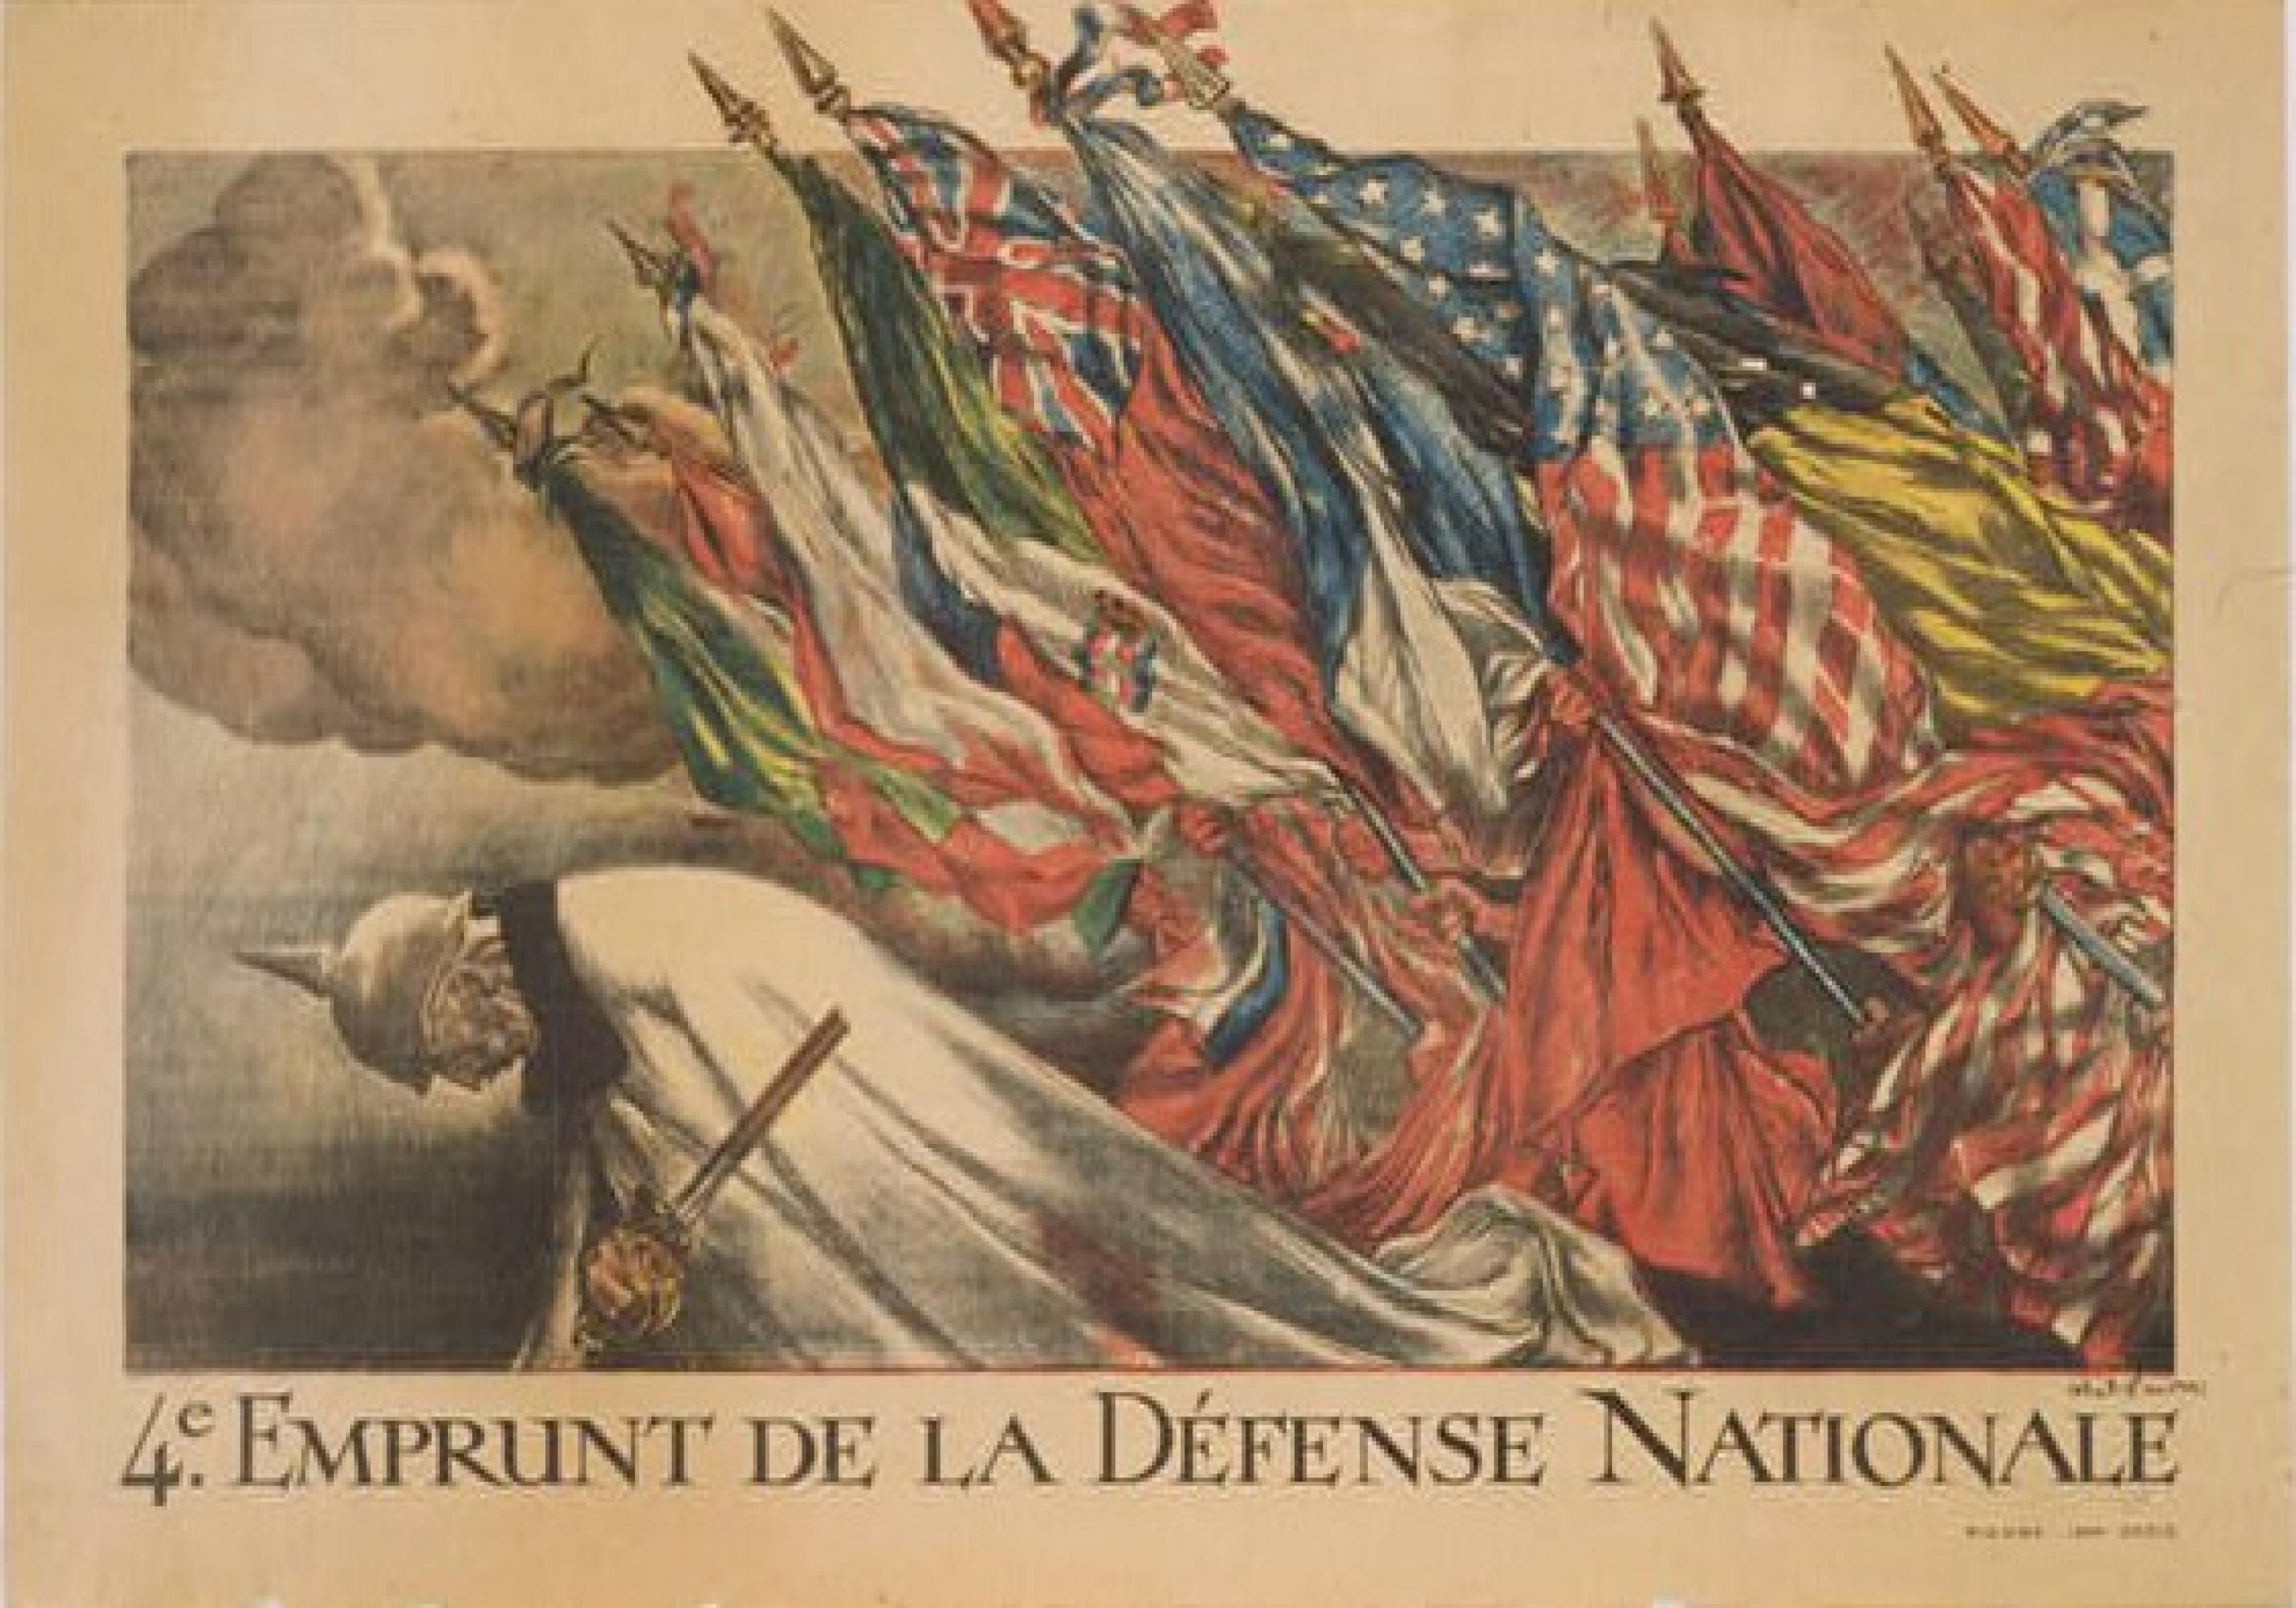 publicity image for The Patriotic Art of World War I in France